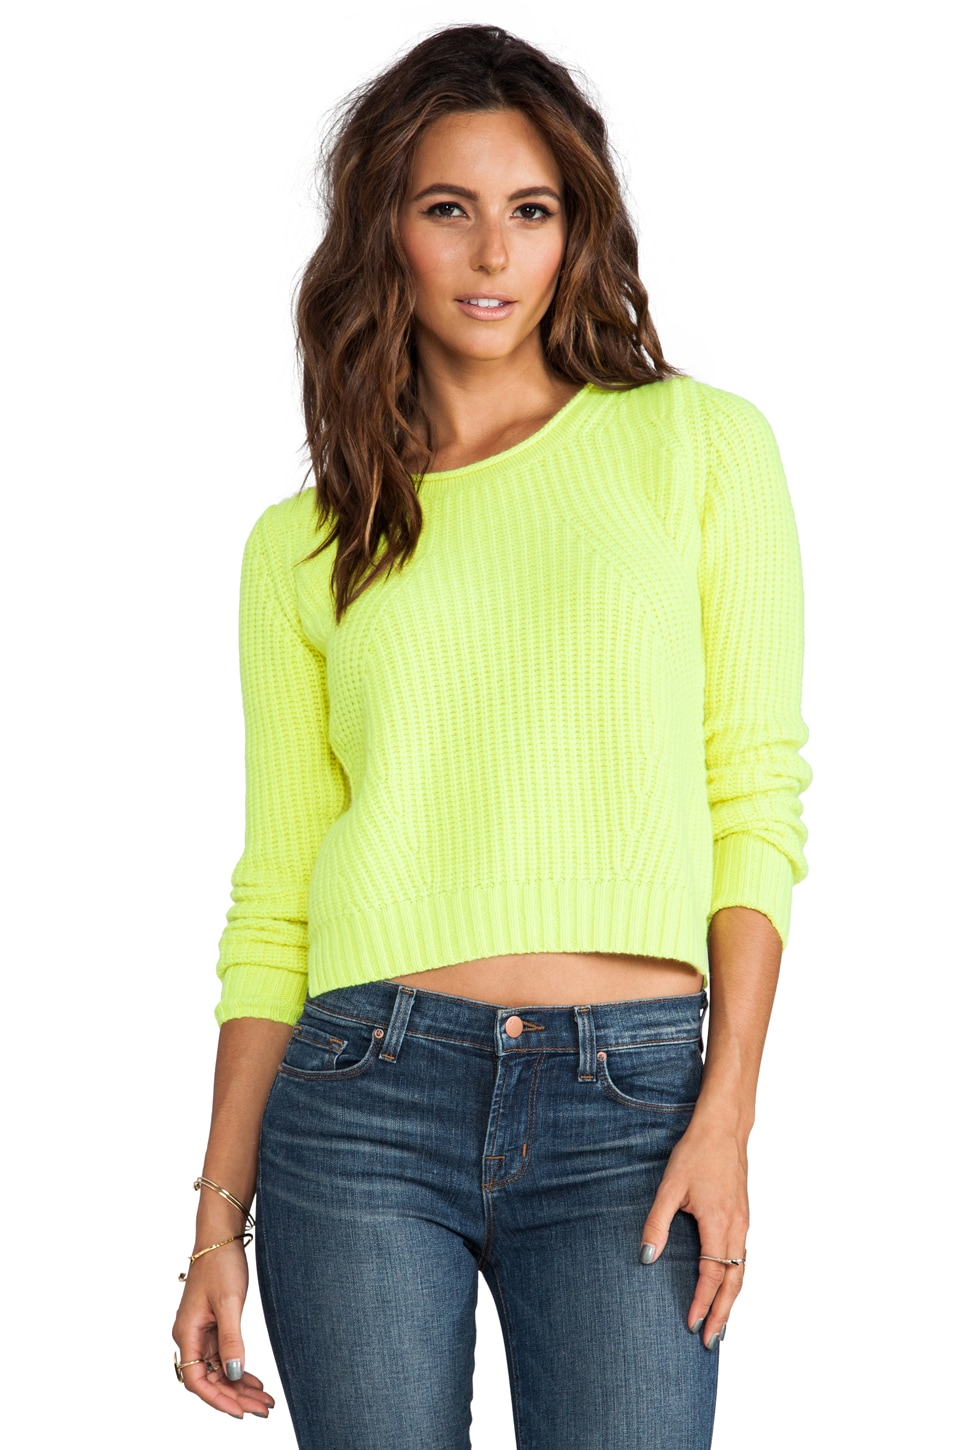 Autumn Cashmere Shaker Stitch Crop Crew in Day Glo